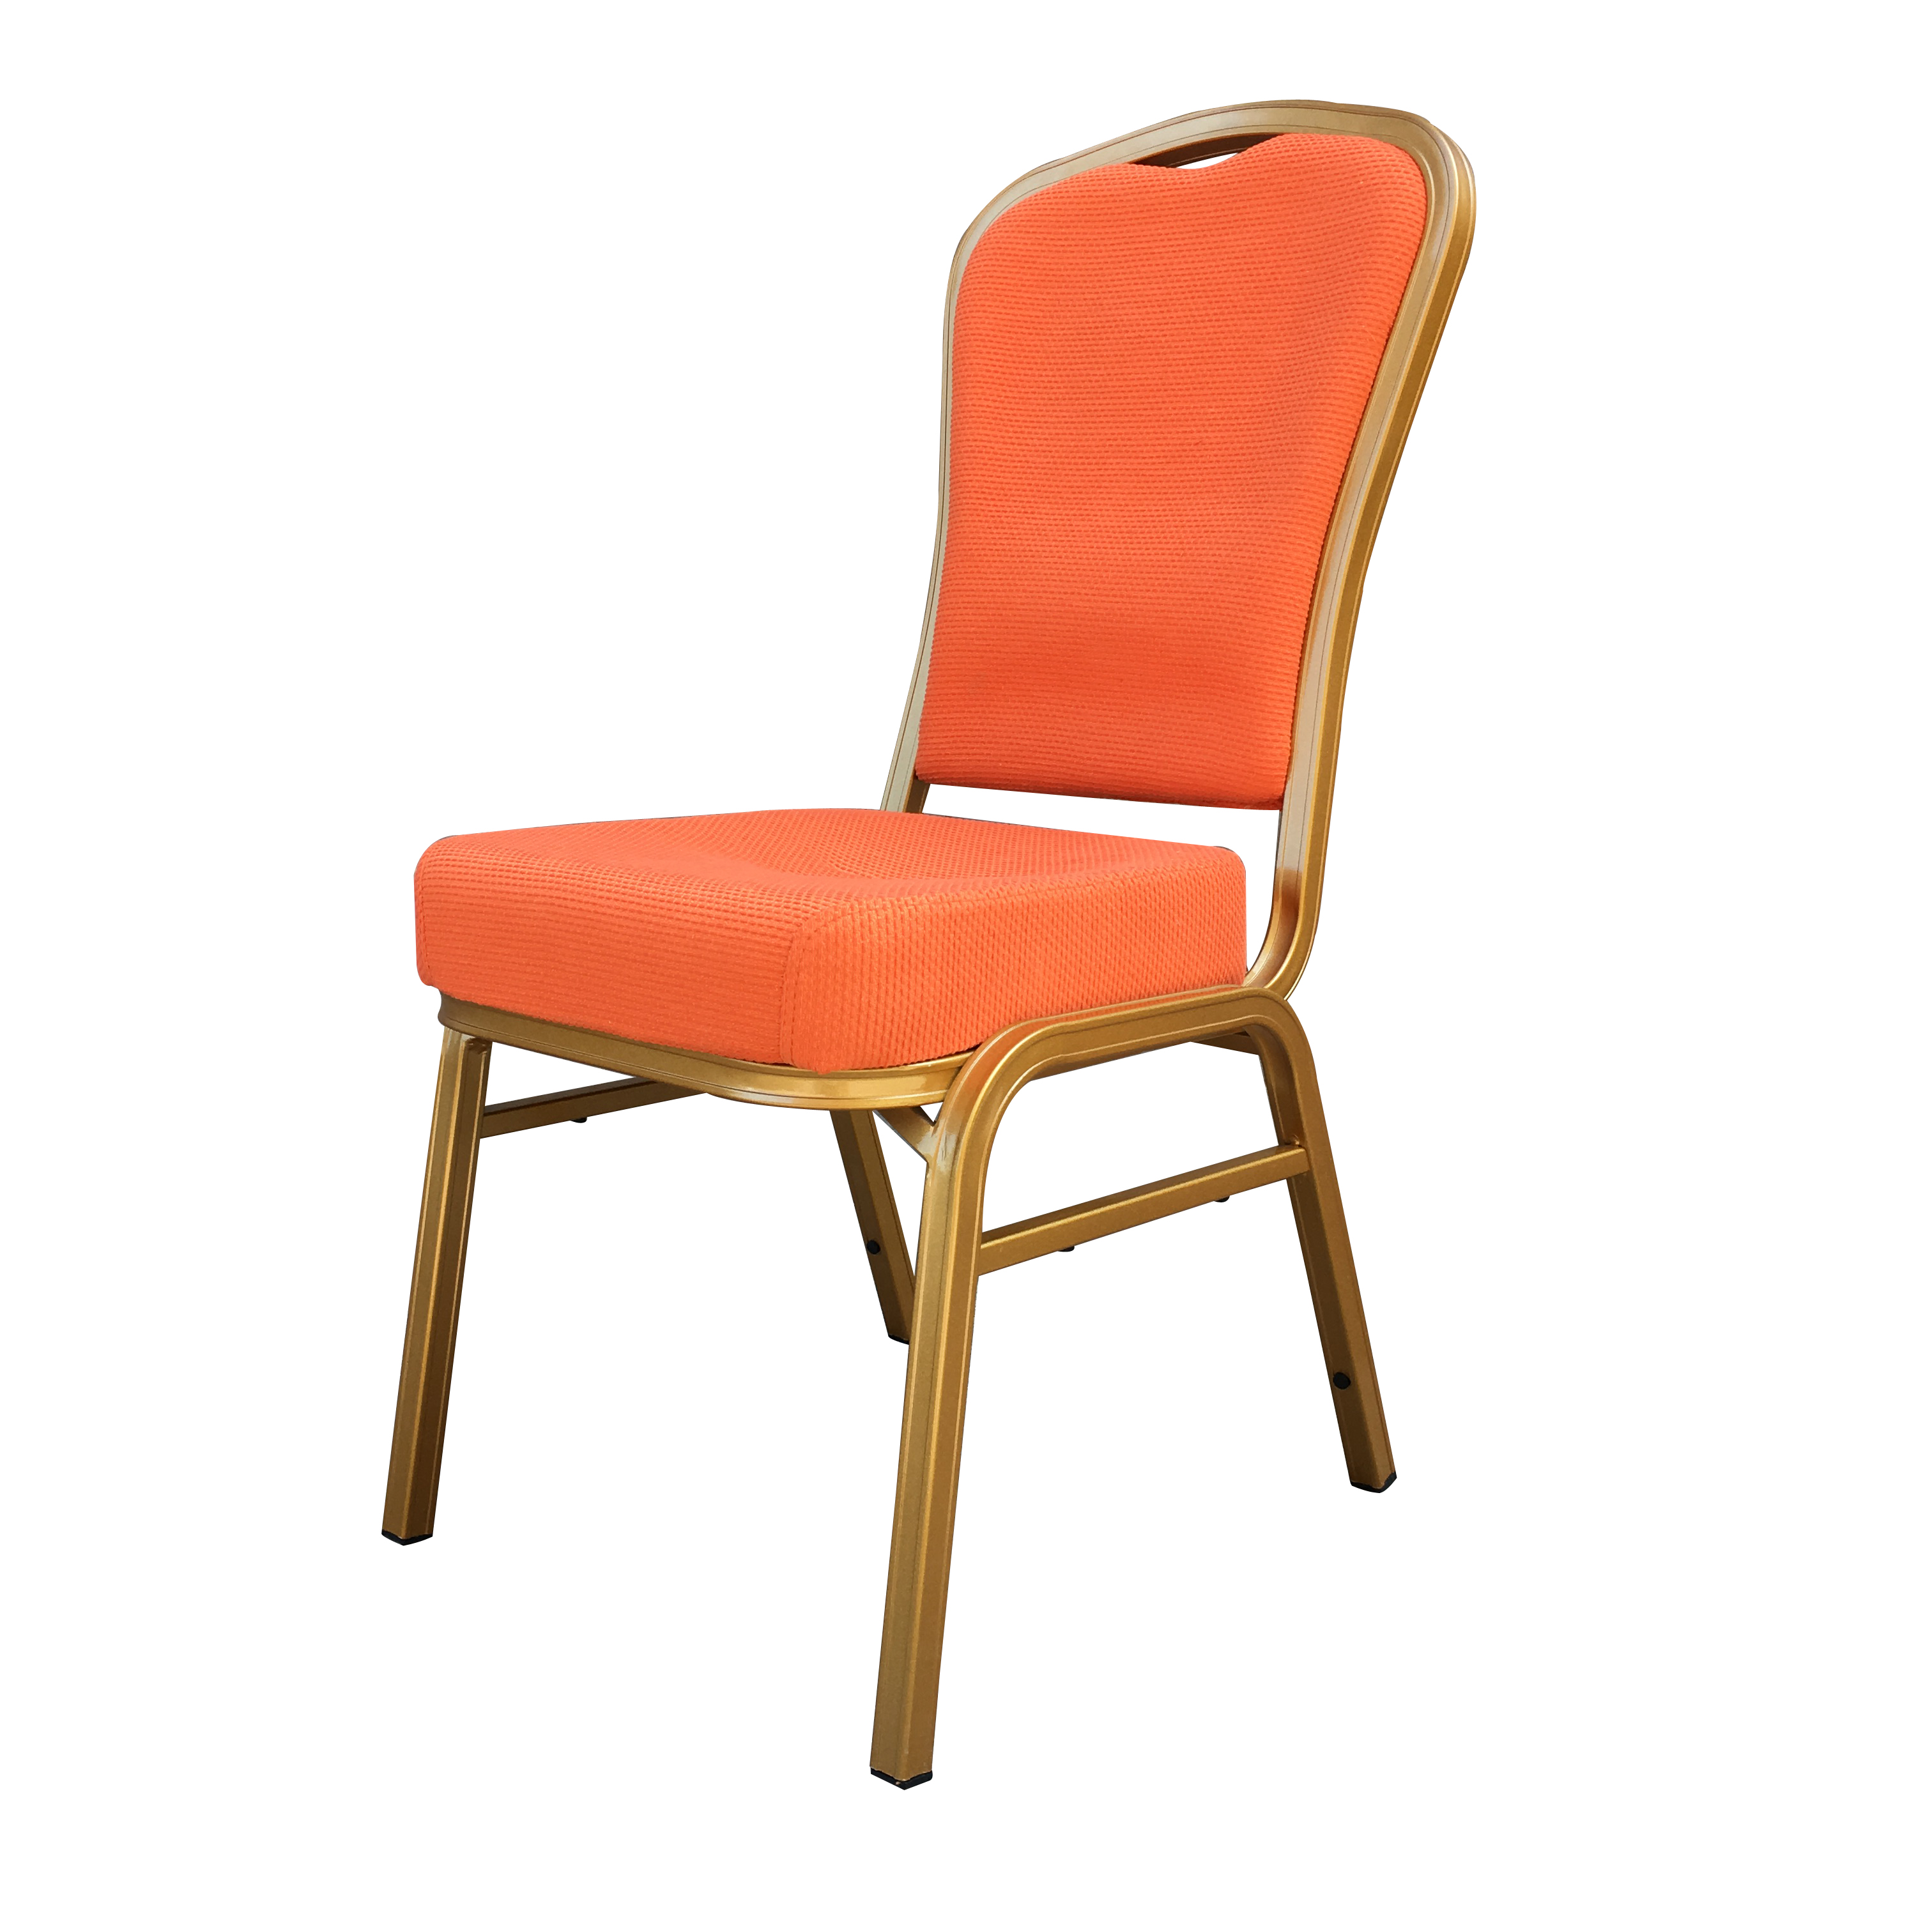 One of Hottest for Auditorium Seat 3d -